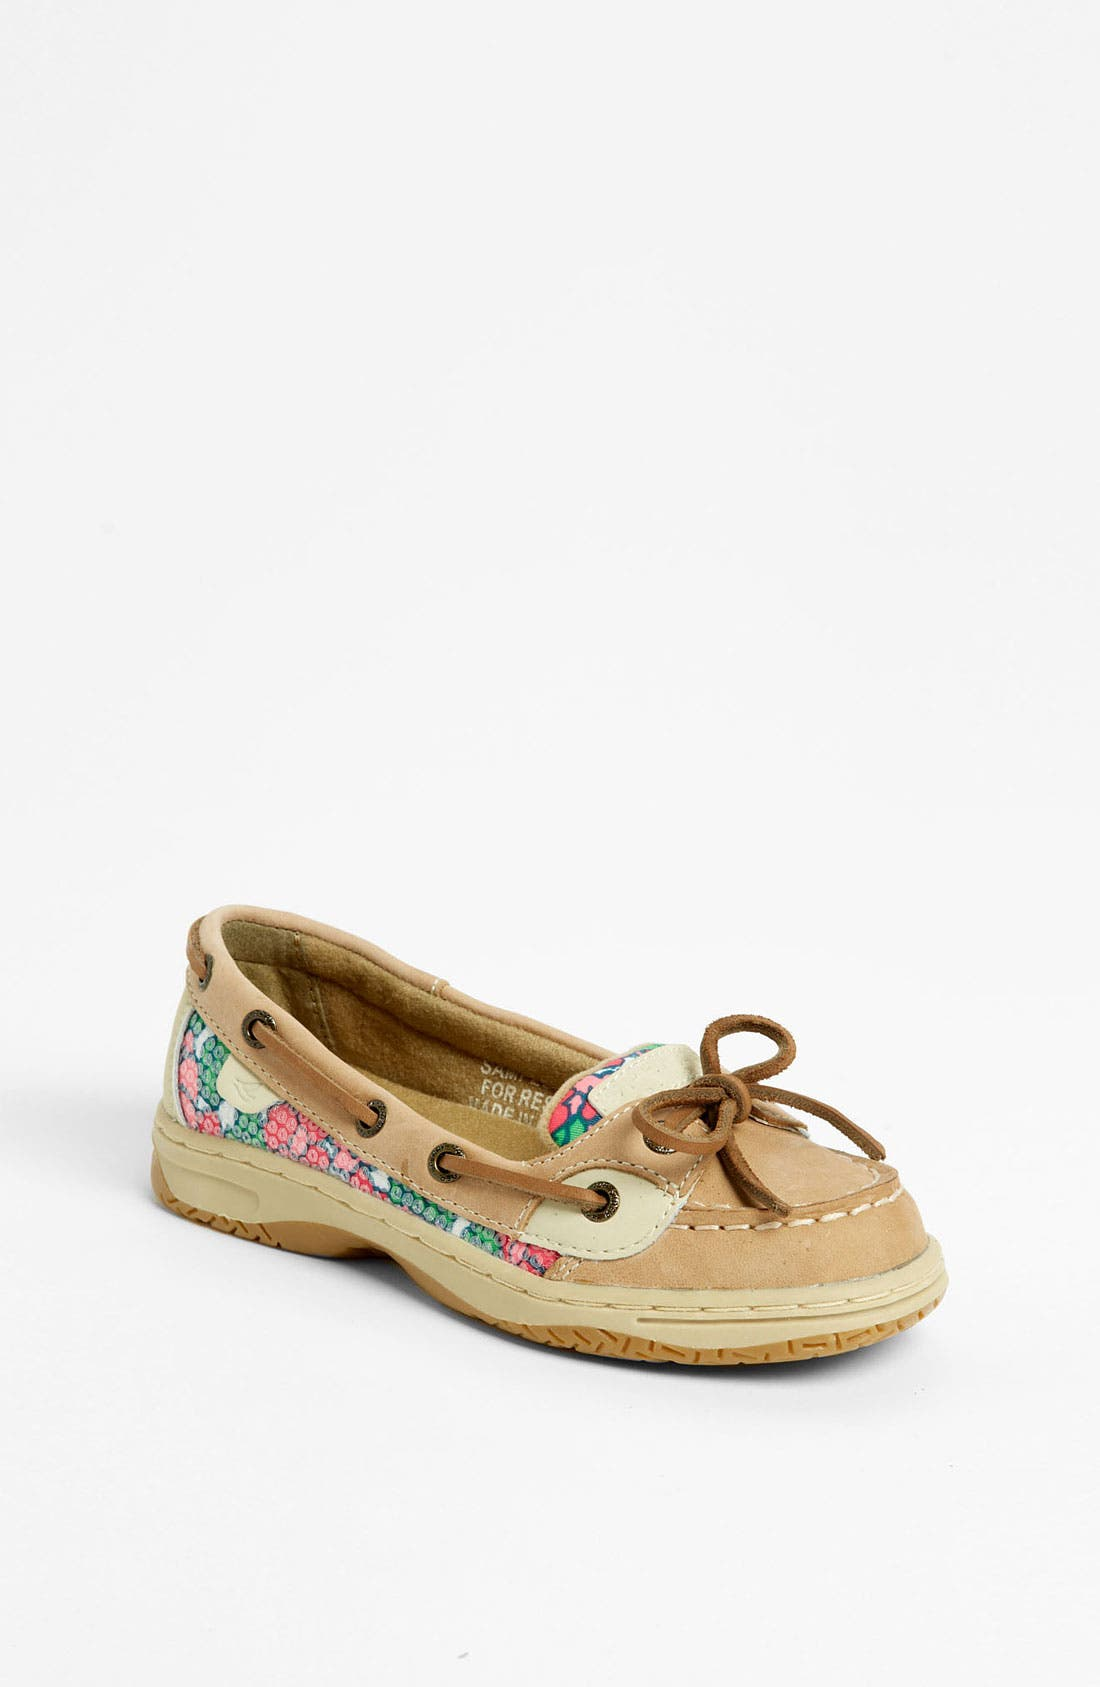 Alternate Image 1 Selected - Sperry Top-Sider® 'Angelfish' Boat Shoe (Little Kid & Big Kid)